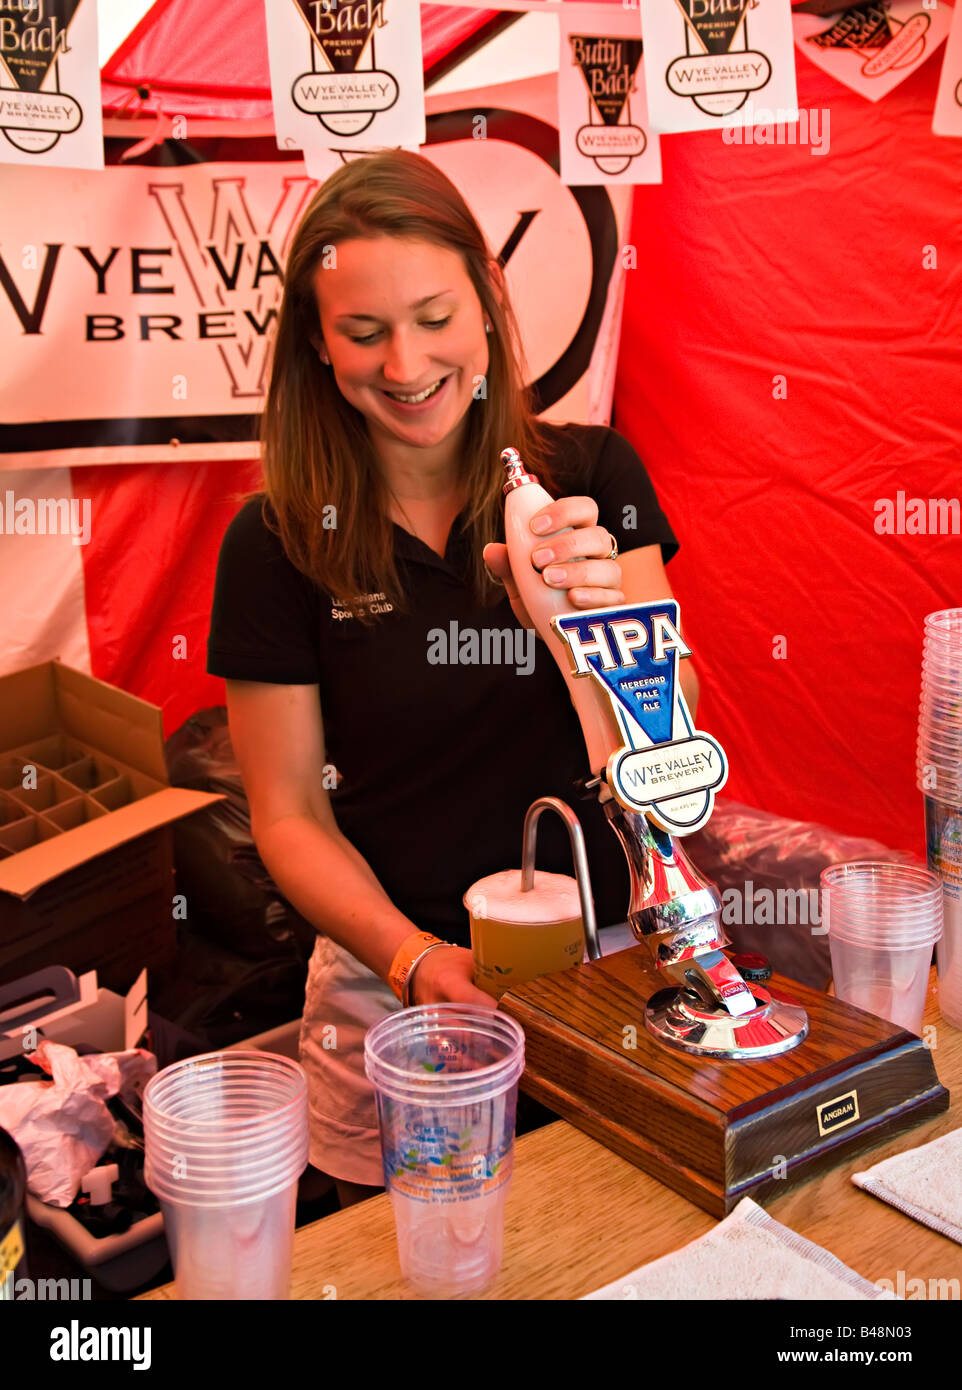 Girl pulling pint of beer in tent at Abergavenny Food Festival Wales UK - Stock Image